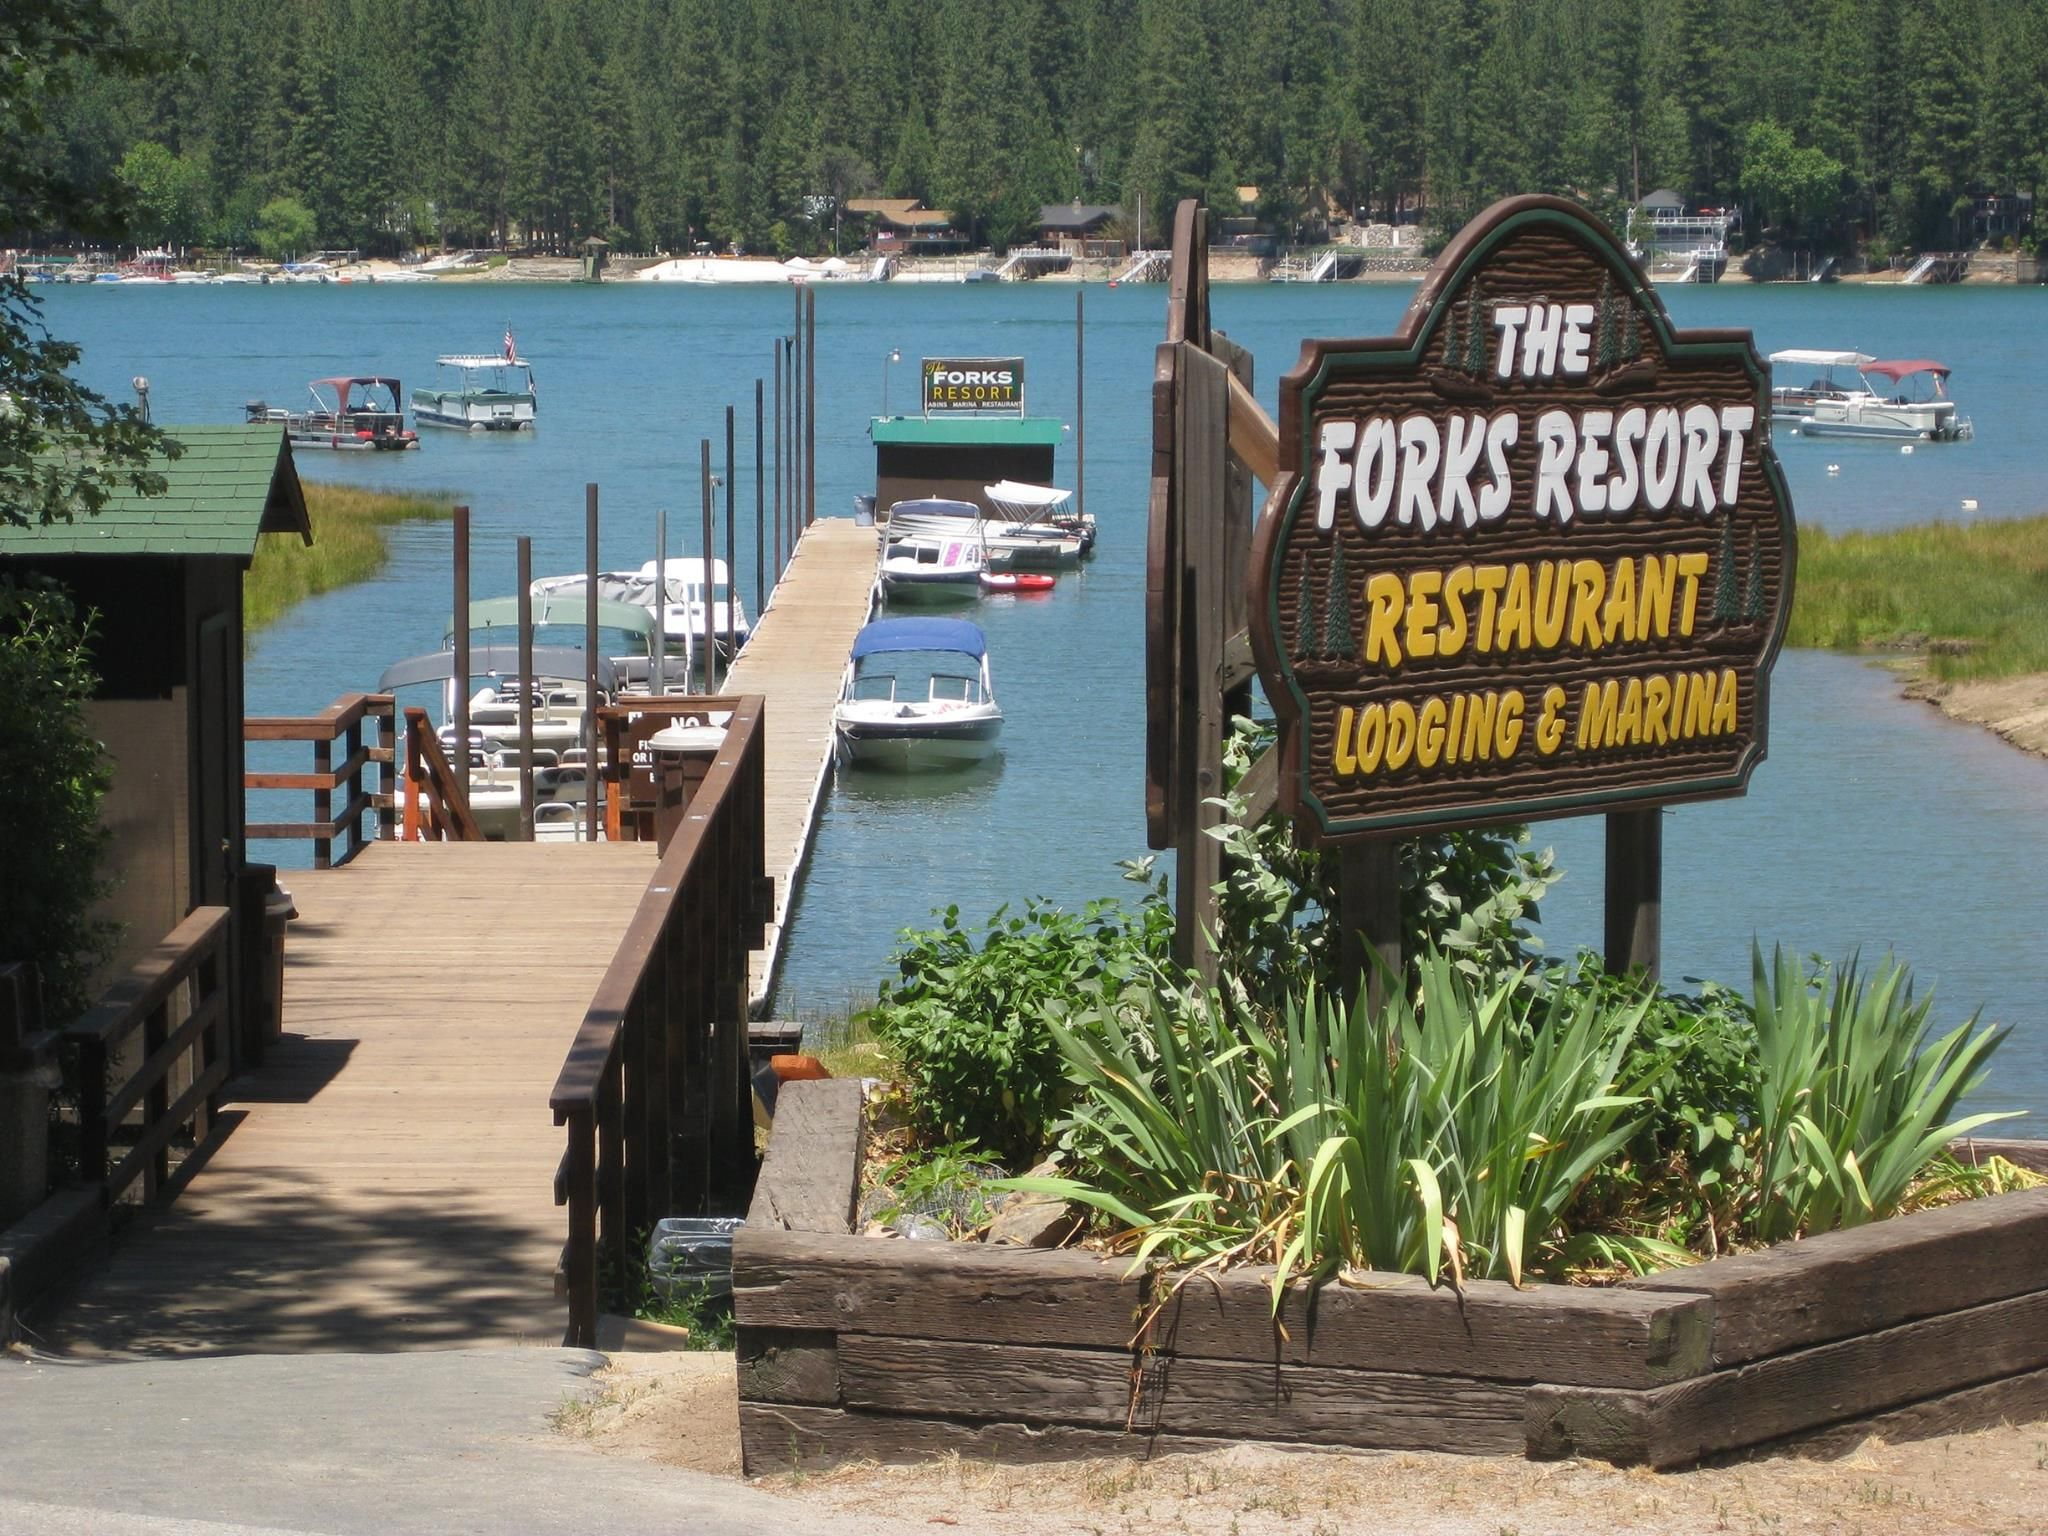 Bass_Lake_At_Yosemite_The_Forks_Restaurant